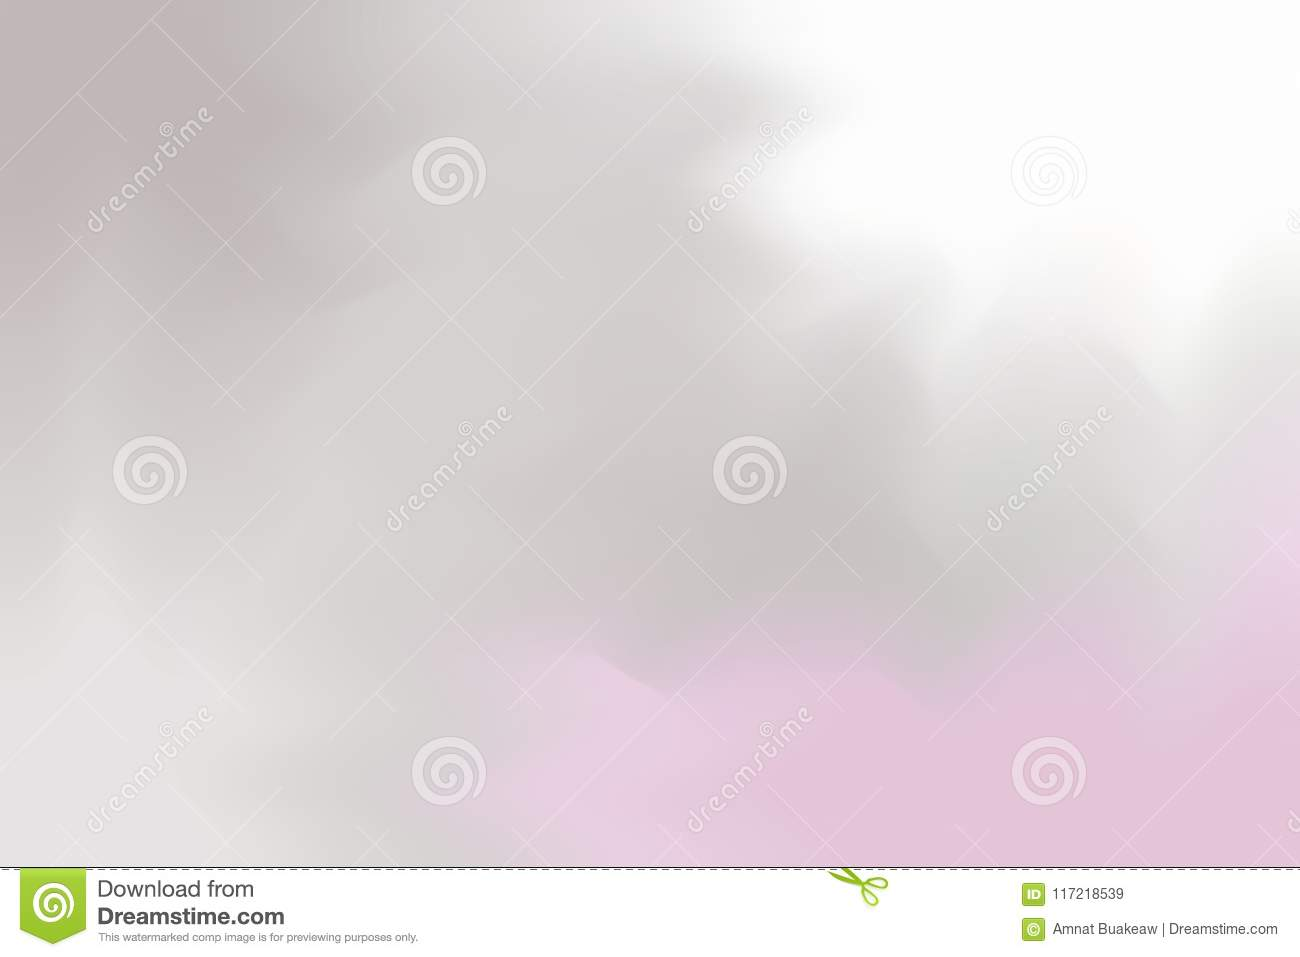 Grey Pink Soft Color Mixed Background Painting Art Pastel Abstract Colorful Art Wallpaper Stock Illustration Illustration Of Colorful Concept 117218539